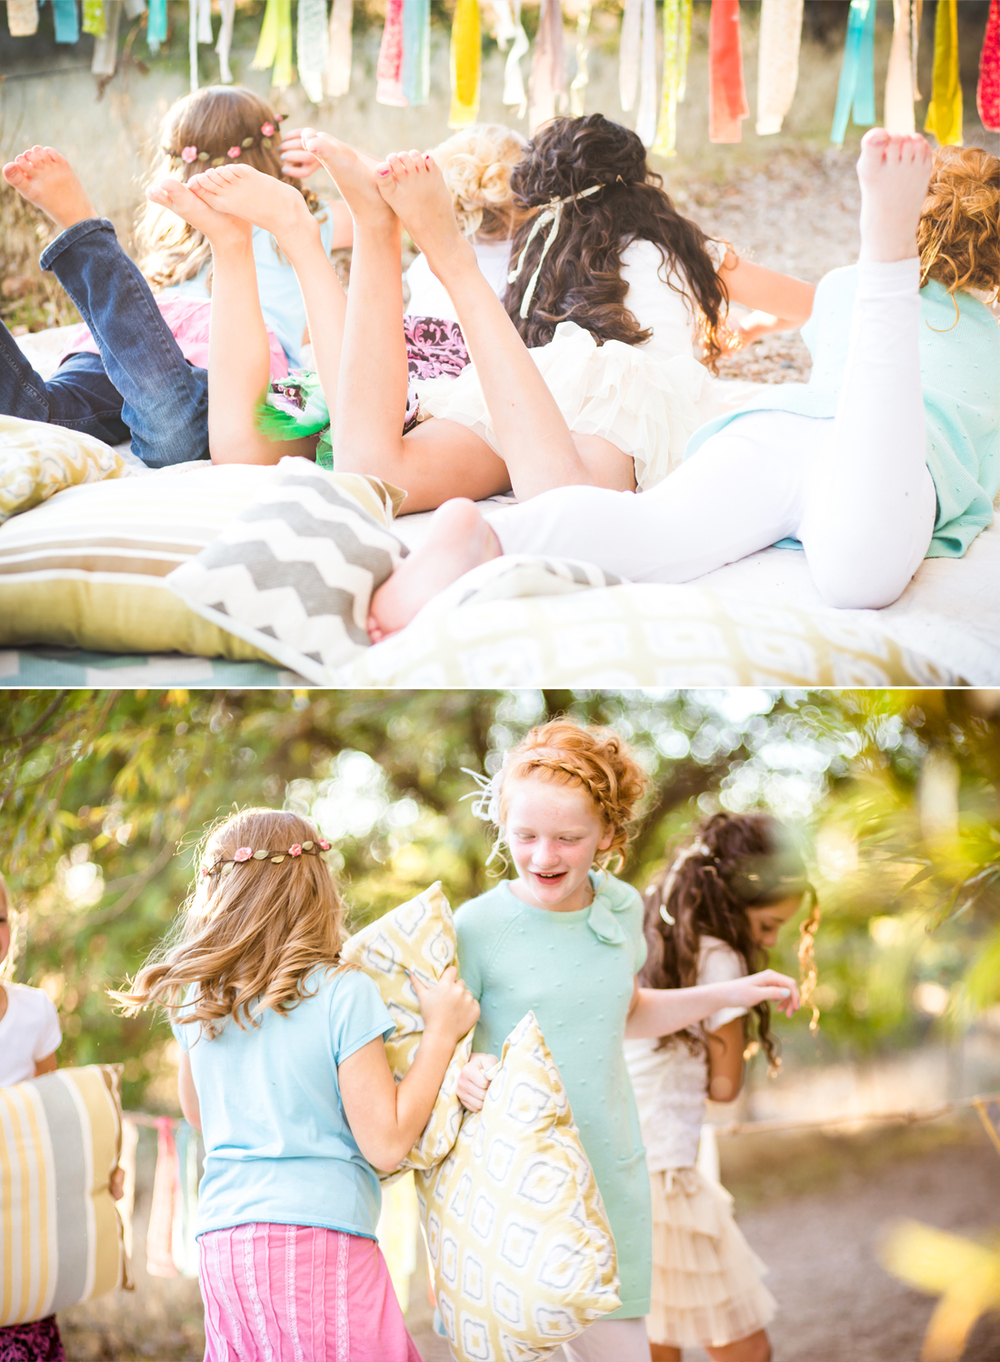 Birthday Party} Whimsical Children's Photography Session